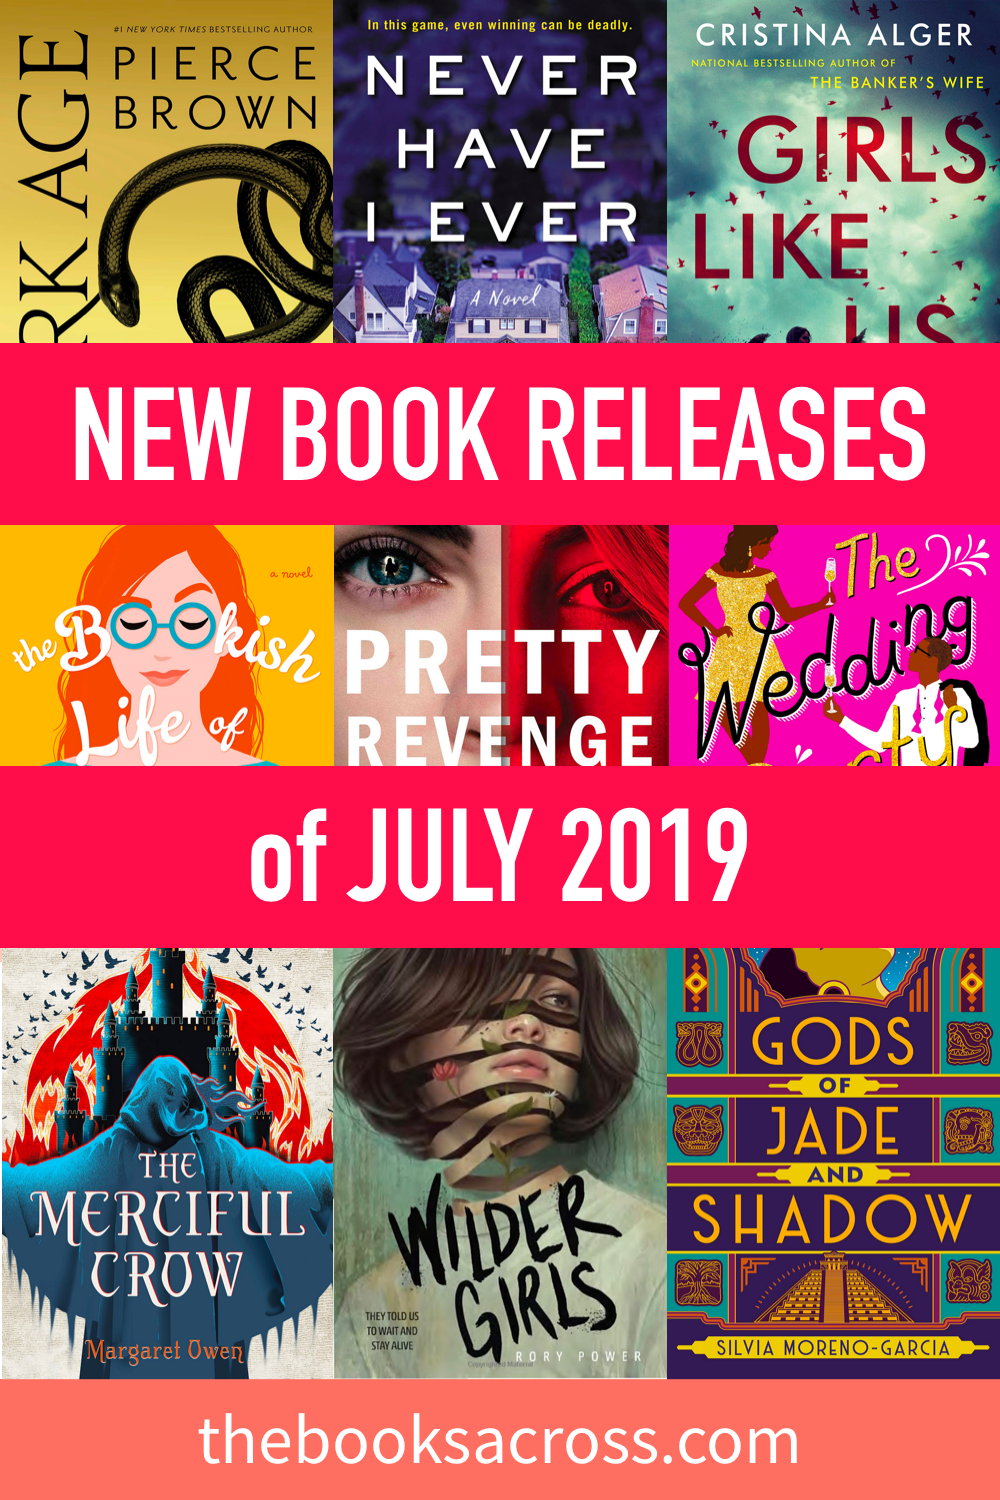 14 New Book Releases coming out in July 2019 | Books, Movies